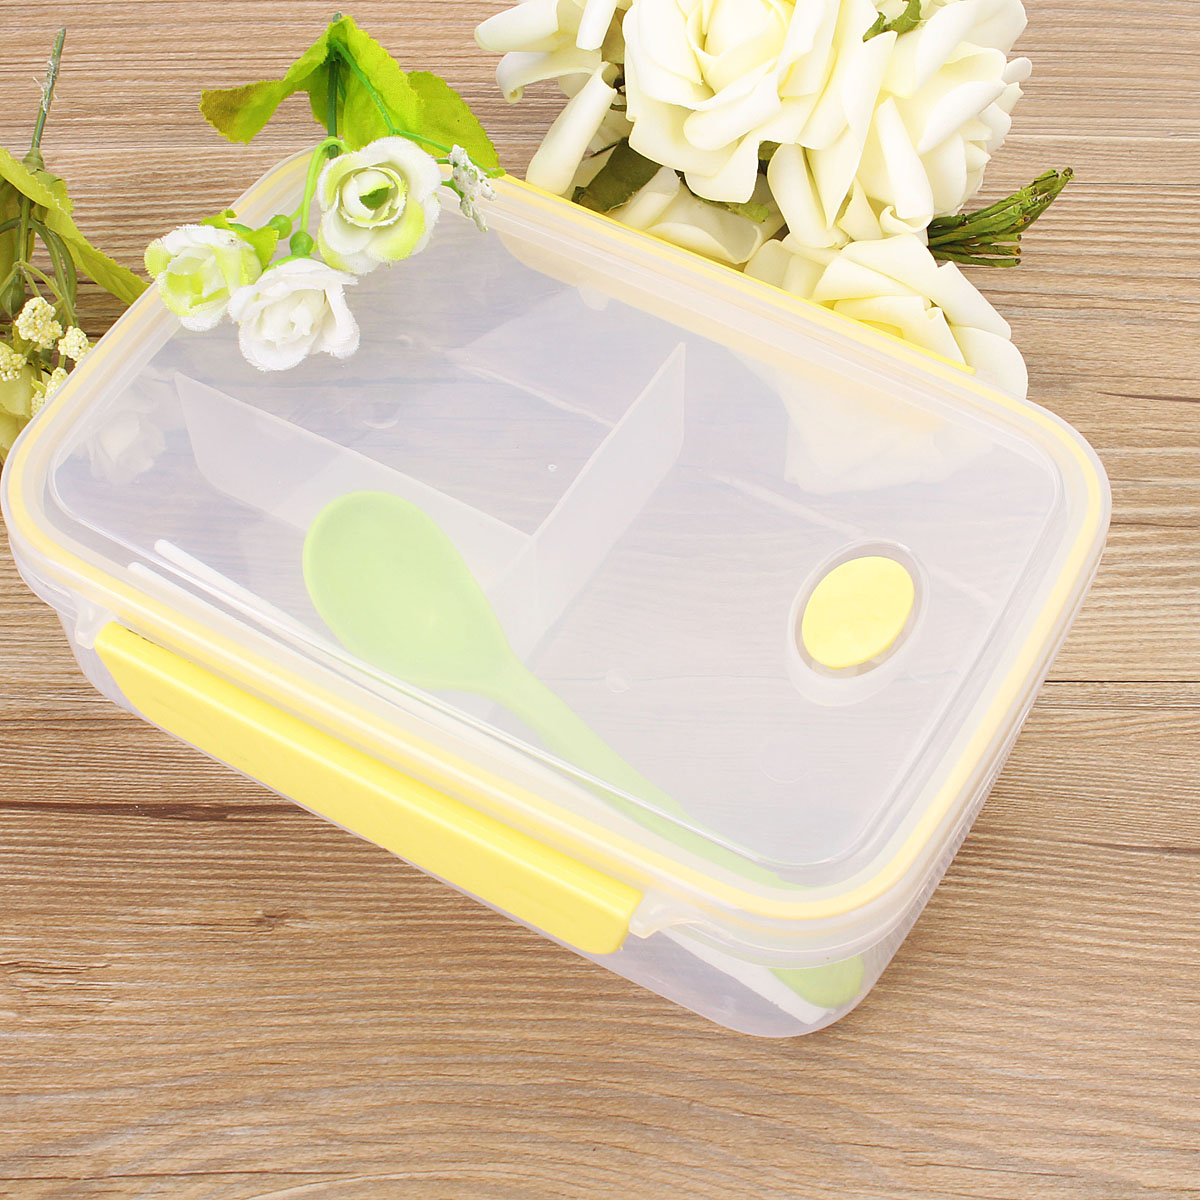 fashion tissue holder cover case car toilet paper bomb roll pumping napkin box ebay. Black Bedroom Furniture Sets. Home Design Ideas